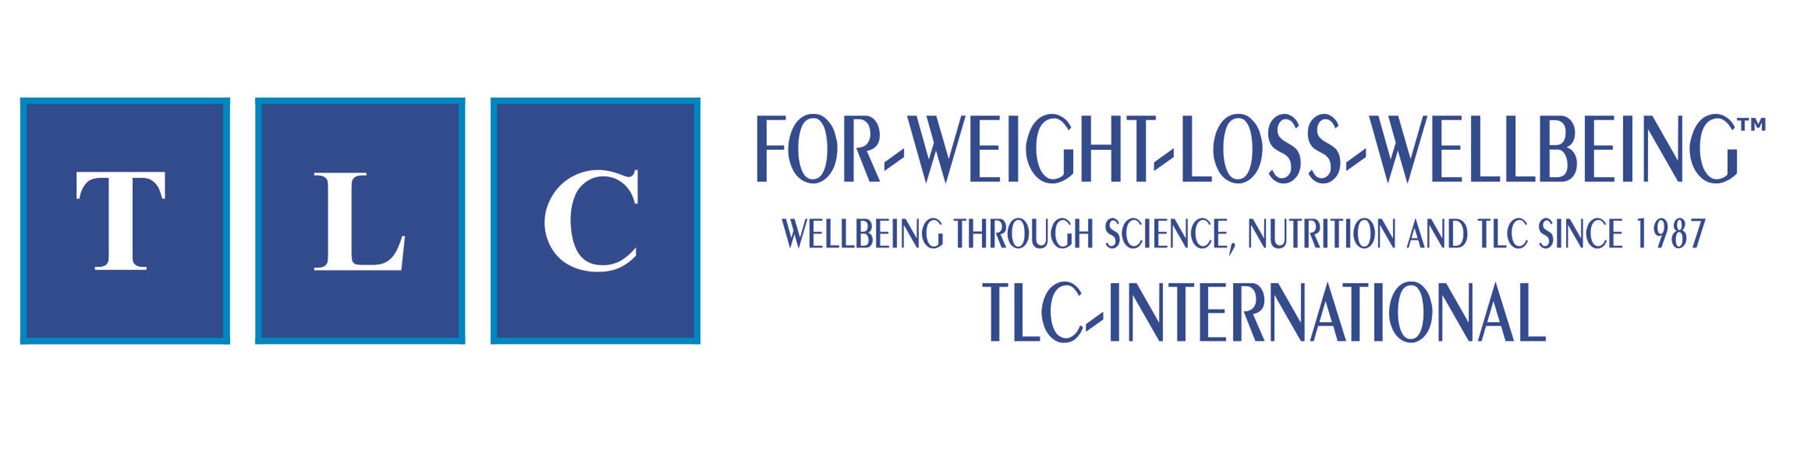 TLC for Wellbeing